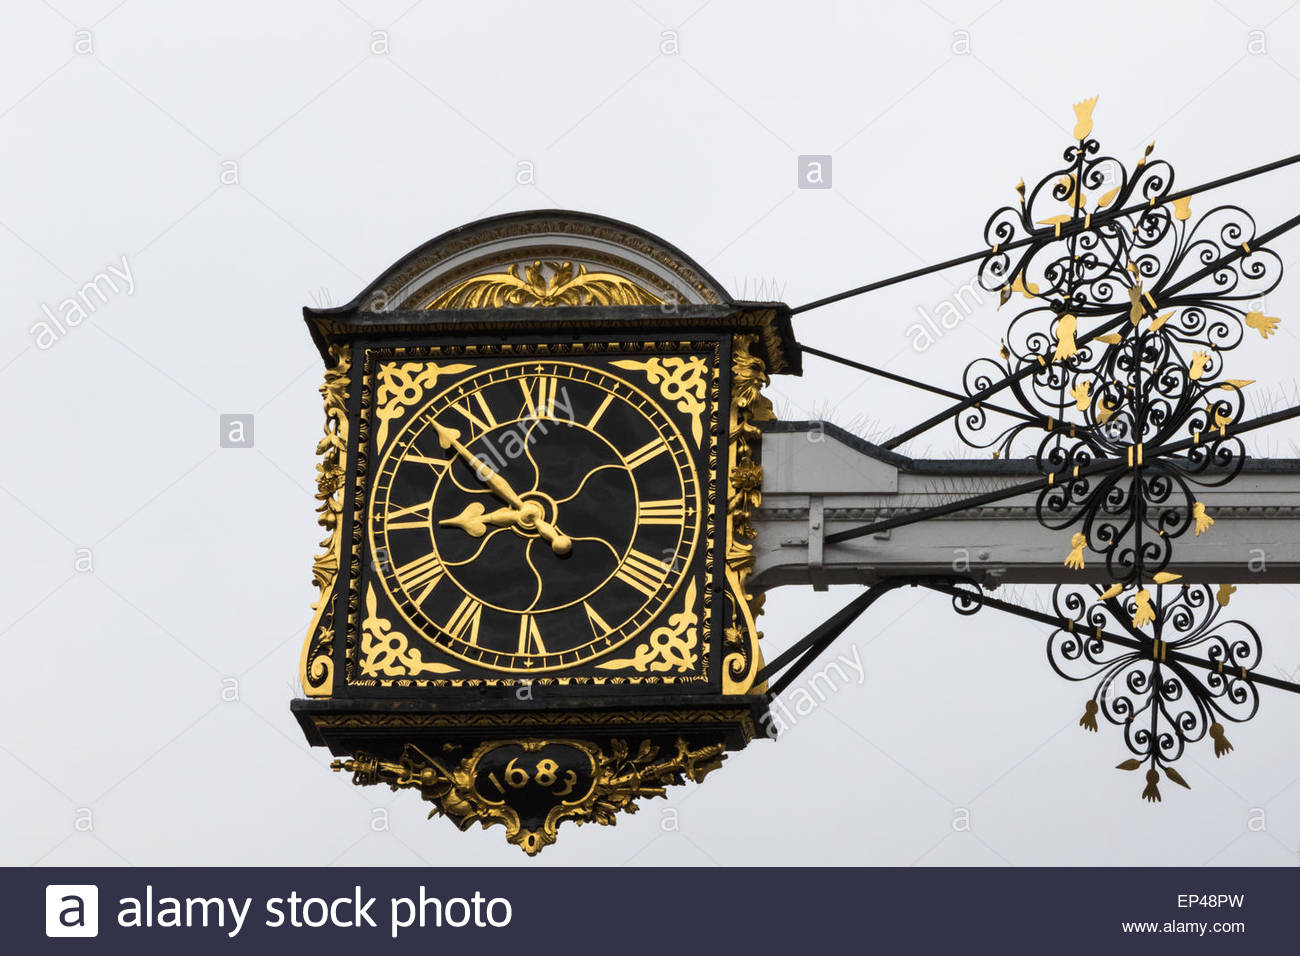 The 17th century clock which hangs above the Guildhall in the High Street of Guildford, Surrey. Made by clockmaker - Stock Image